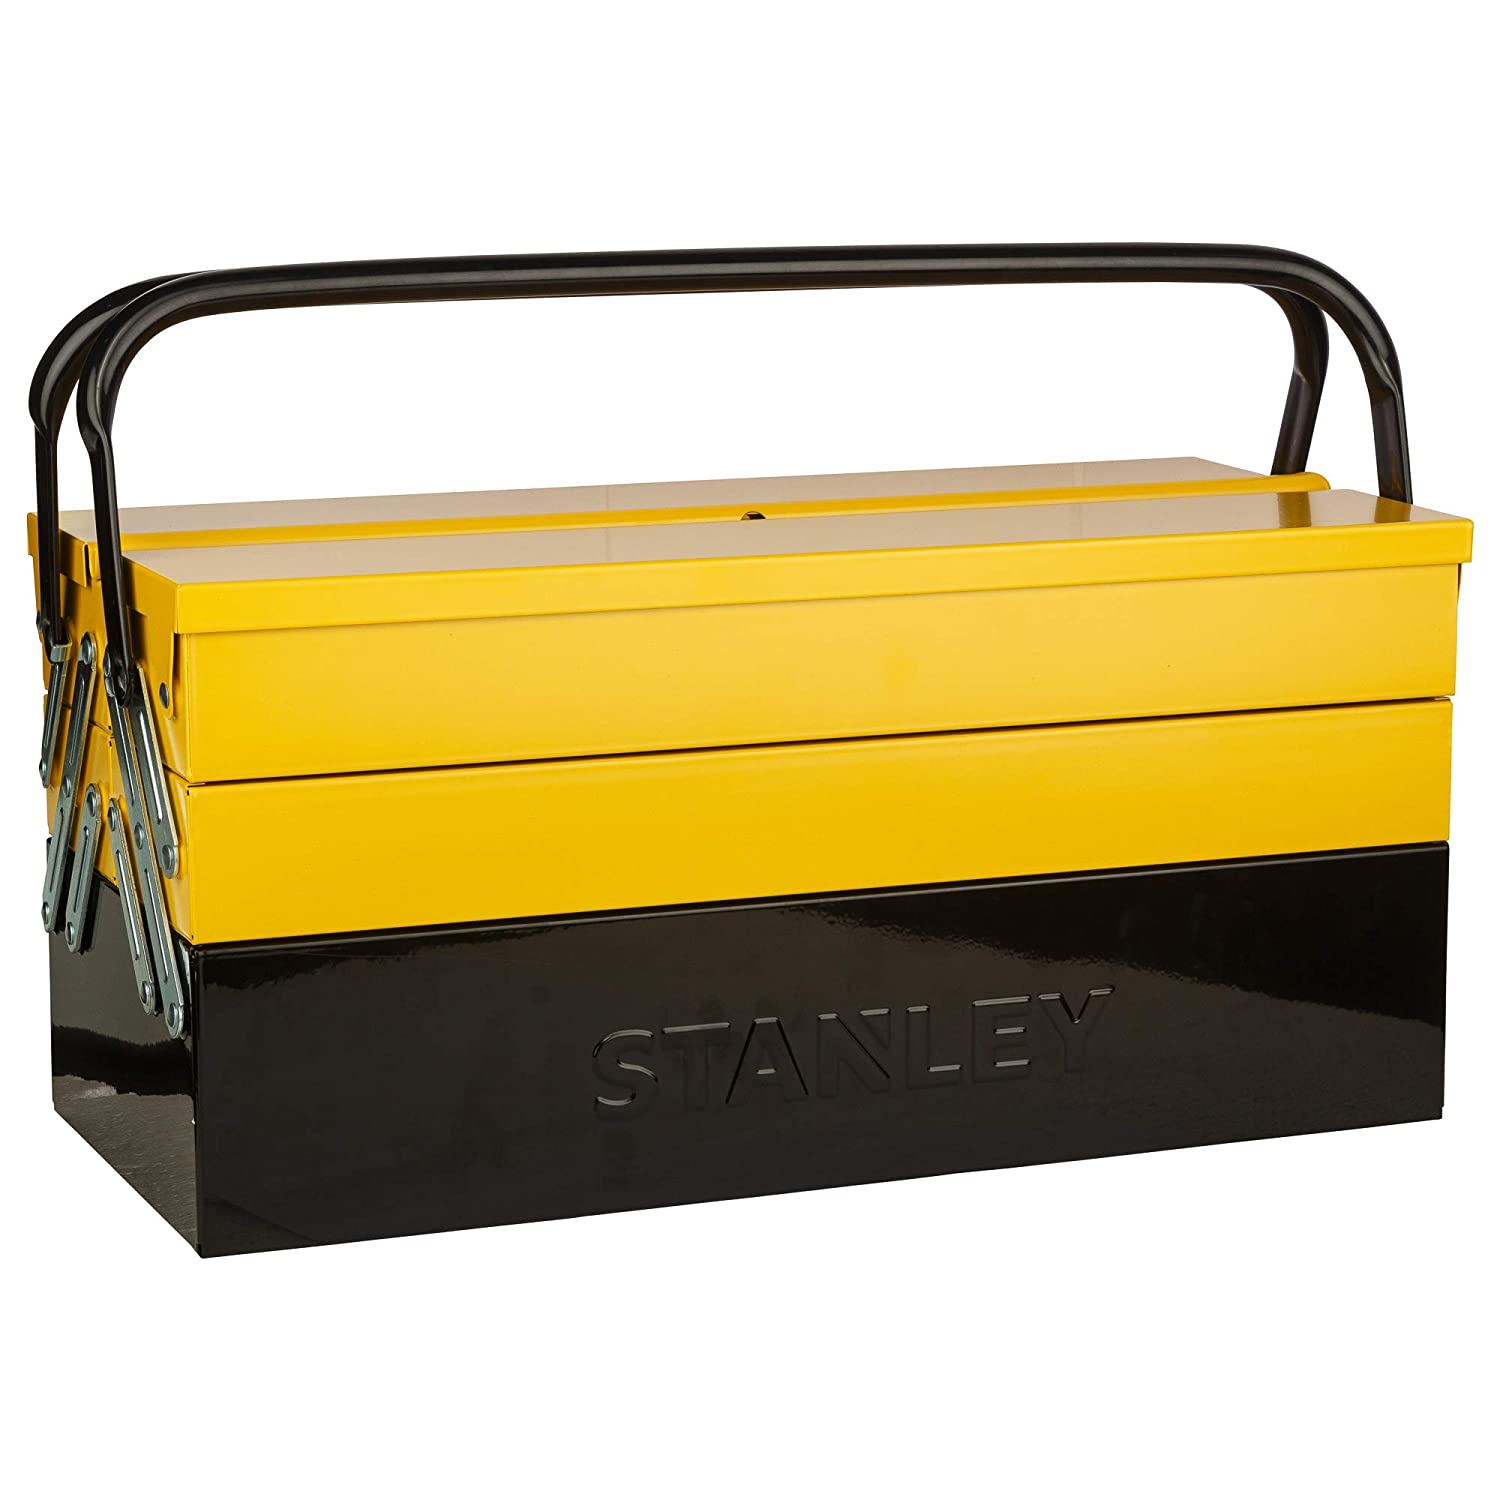 STANLEY Cantilever Tools Box 5 Tray Double Handle,1-94-738